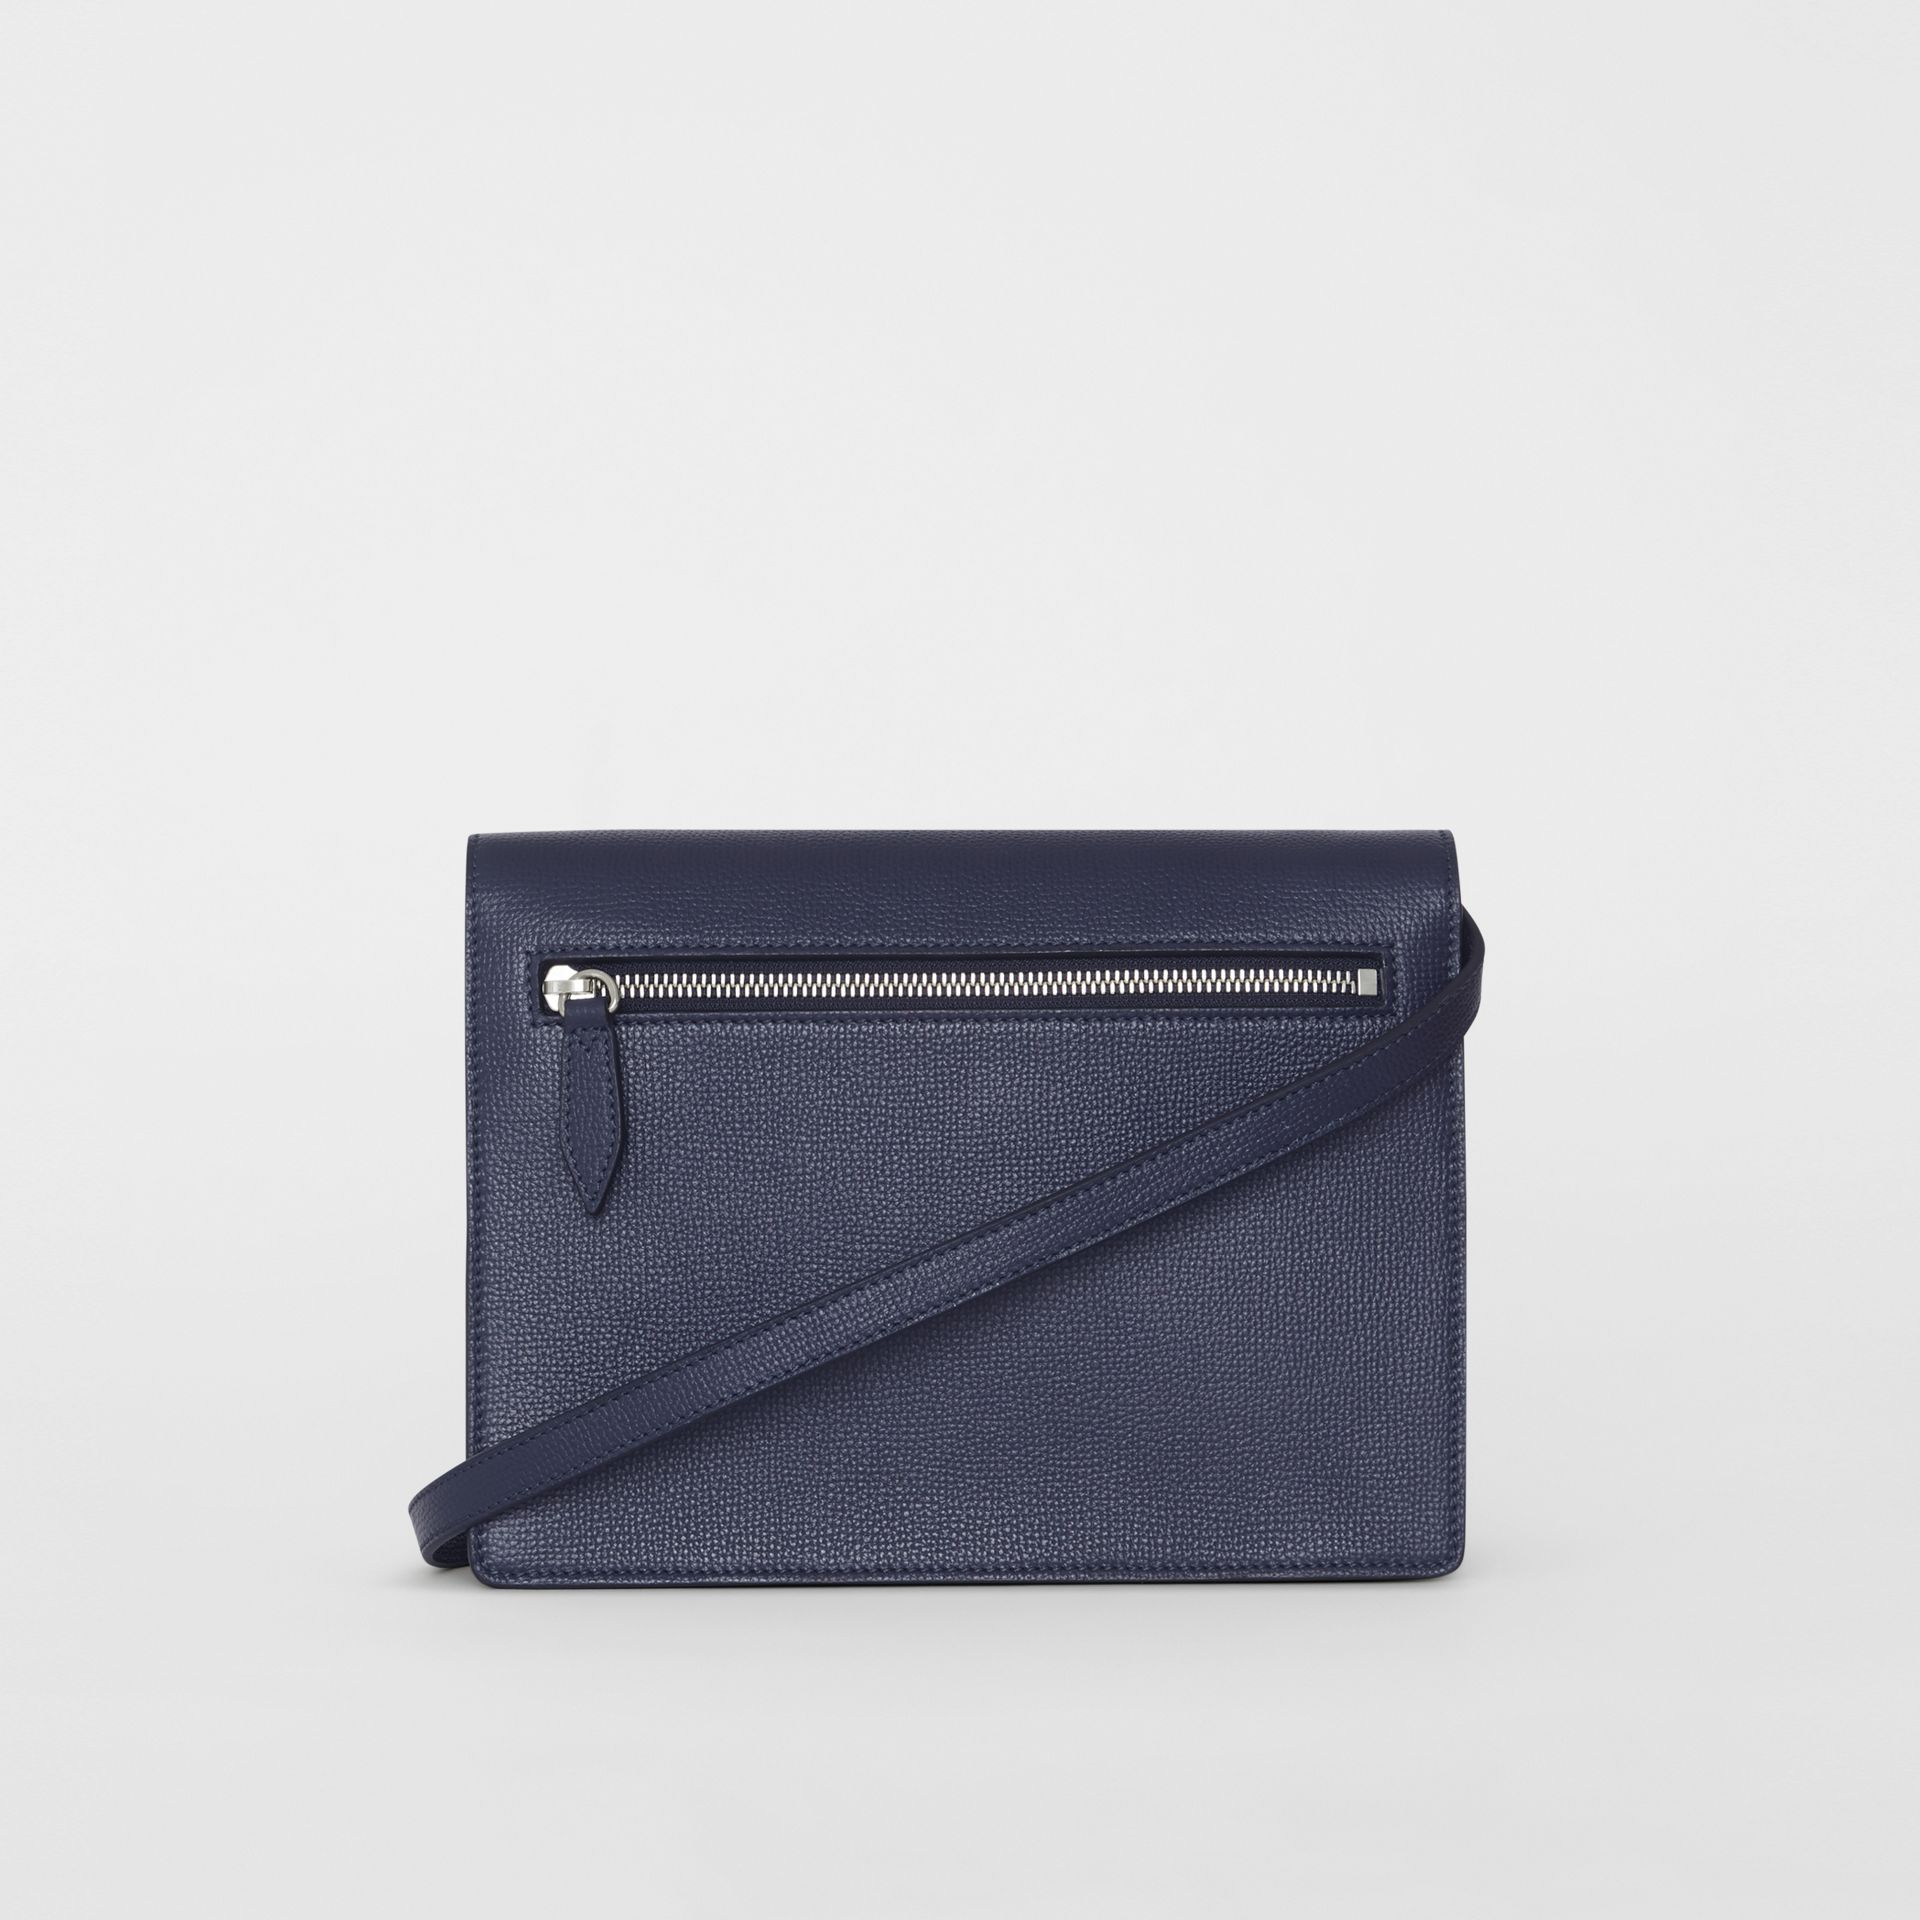 Small Vintage Check and Leather Crossbody Bag in Regency Blue - Women | Burberry - gallery image 5